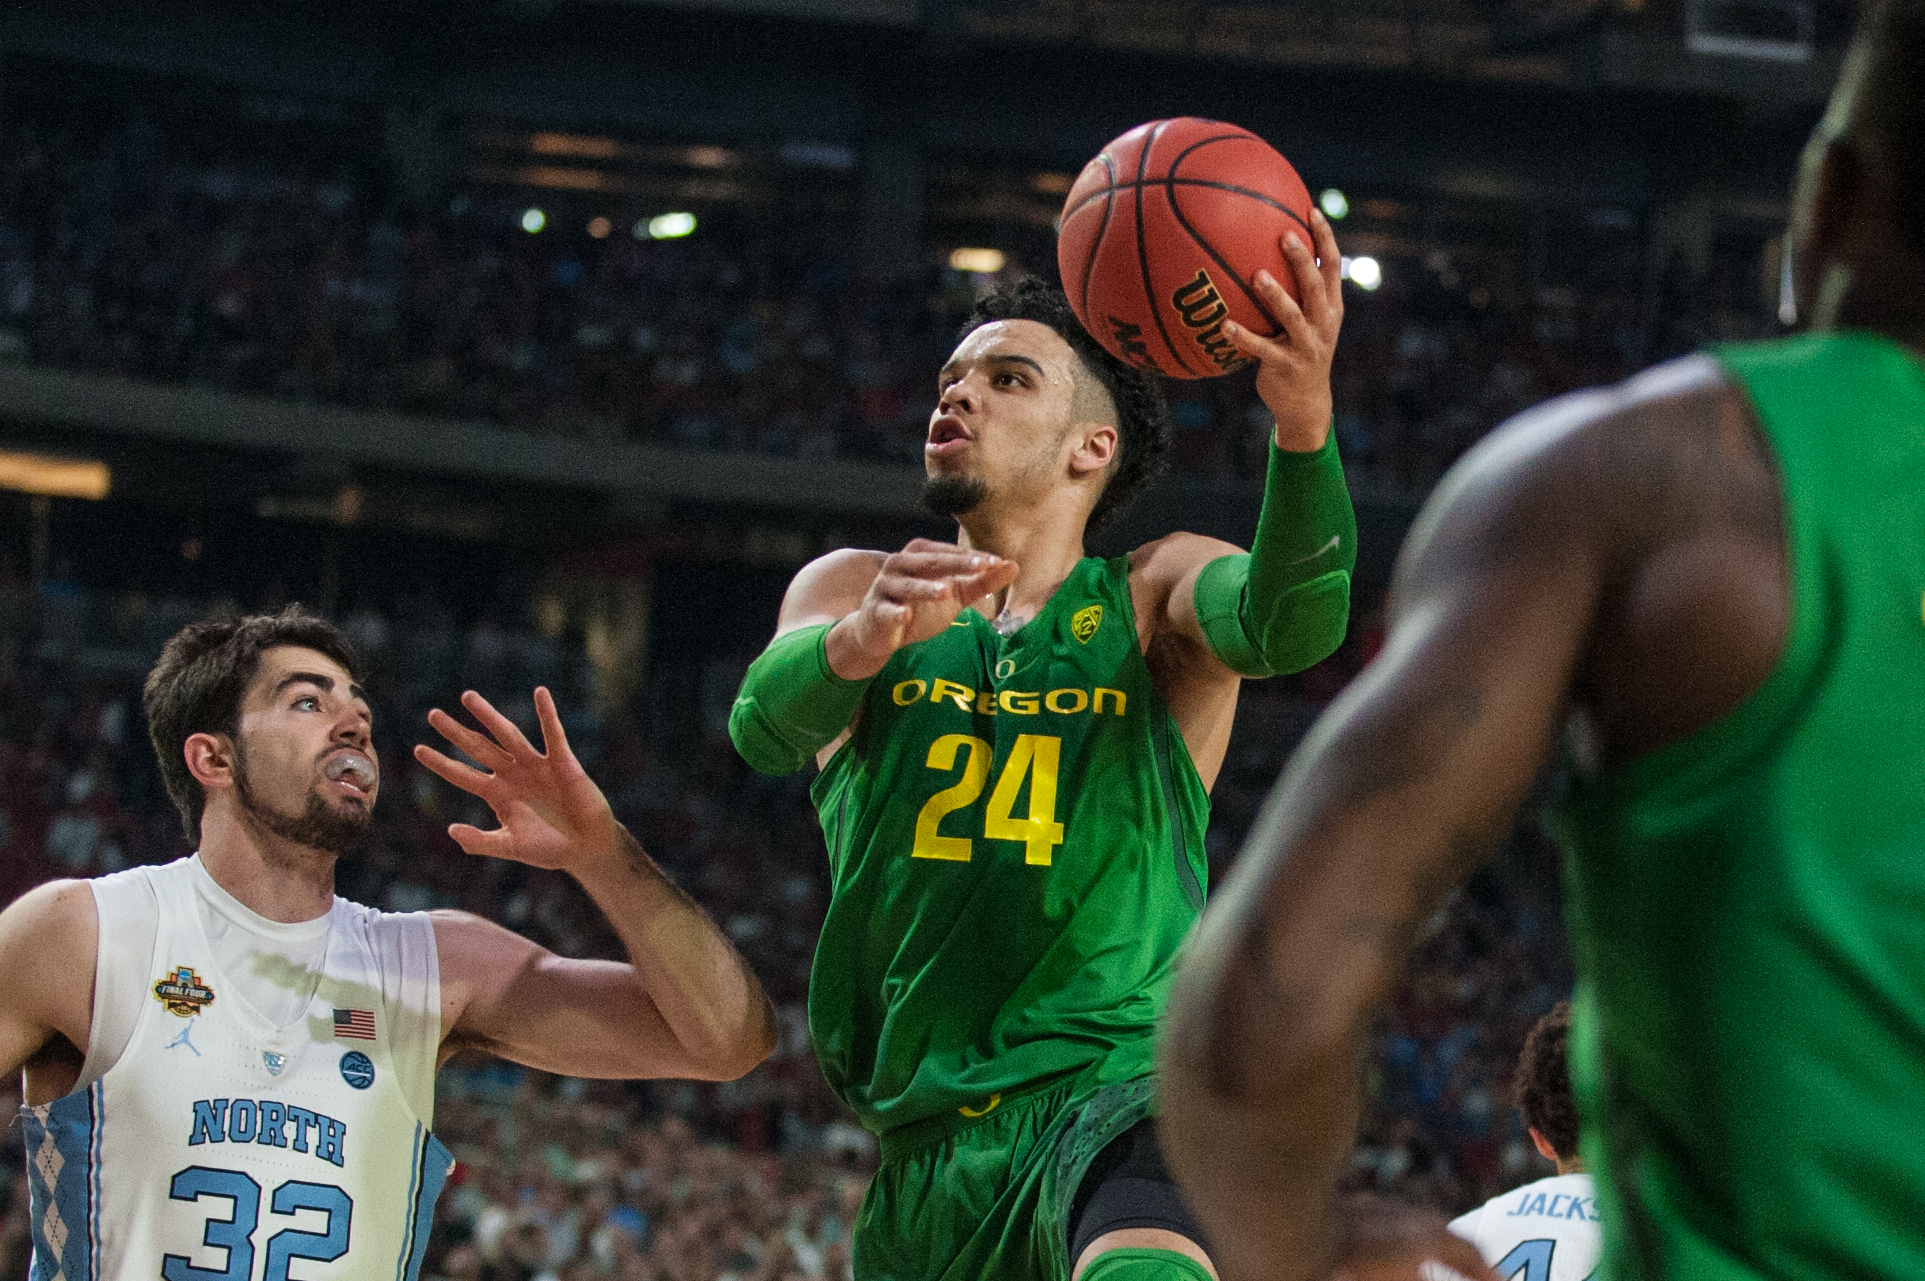 17.03.31.emg.an.final.four.oregon.vs.north.carolina-19.jpg